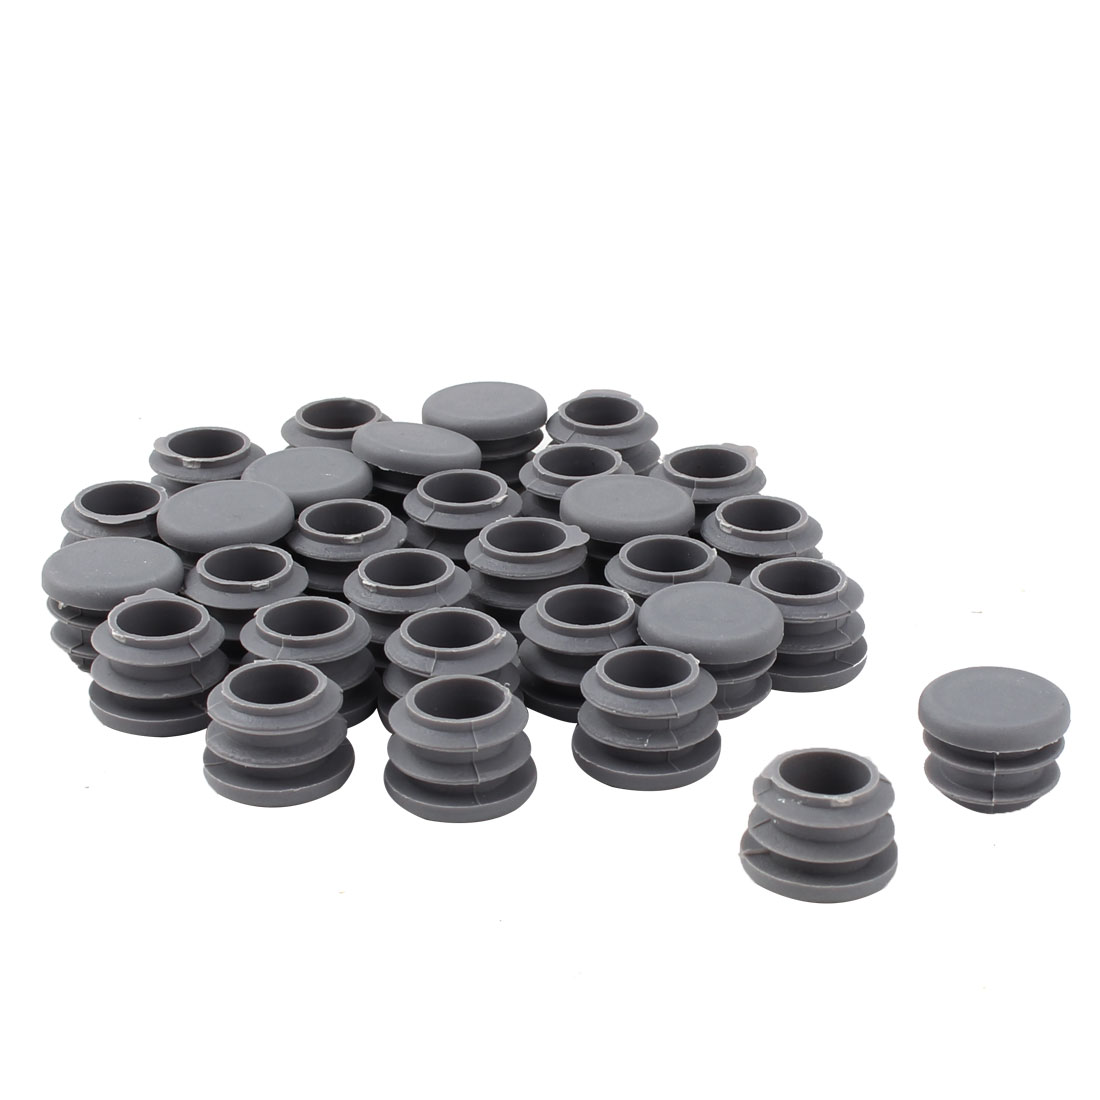 Furniture Table Chair Plastic Round Tube Pipe Insert Cover Protector Gray 19mm Dia 30pcs